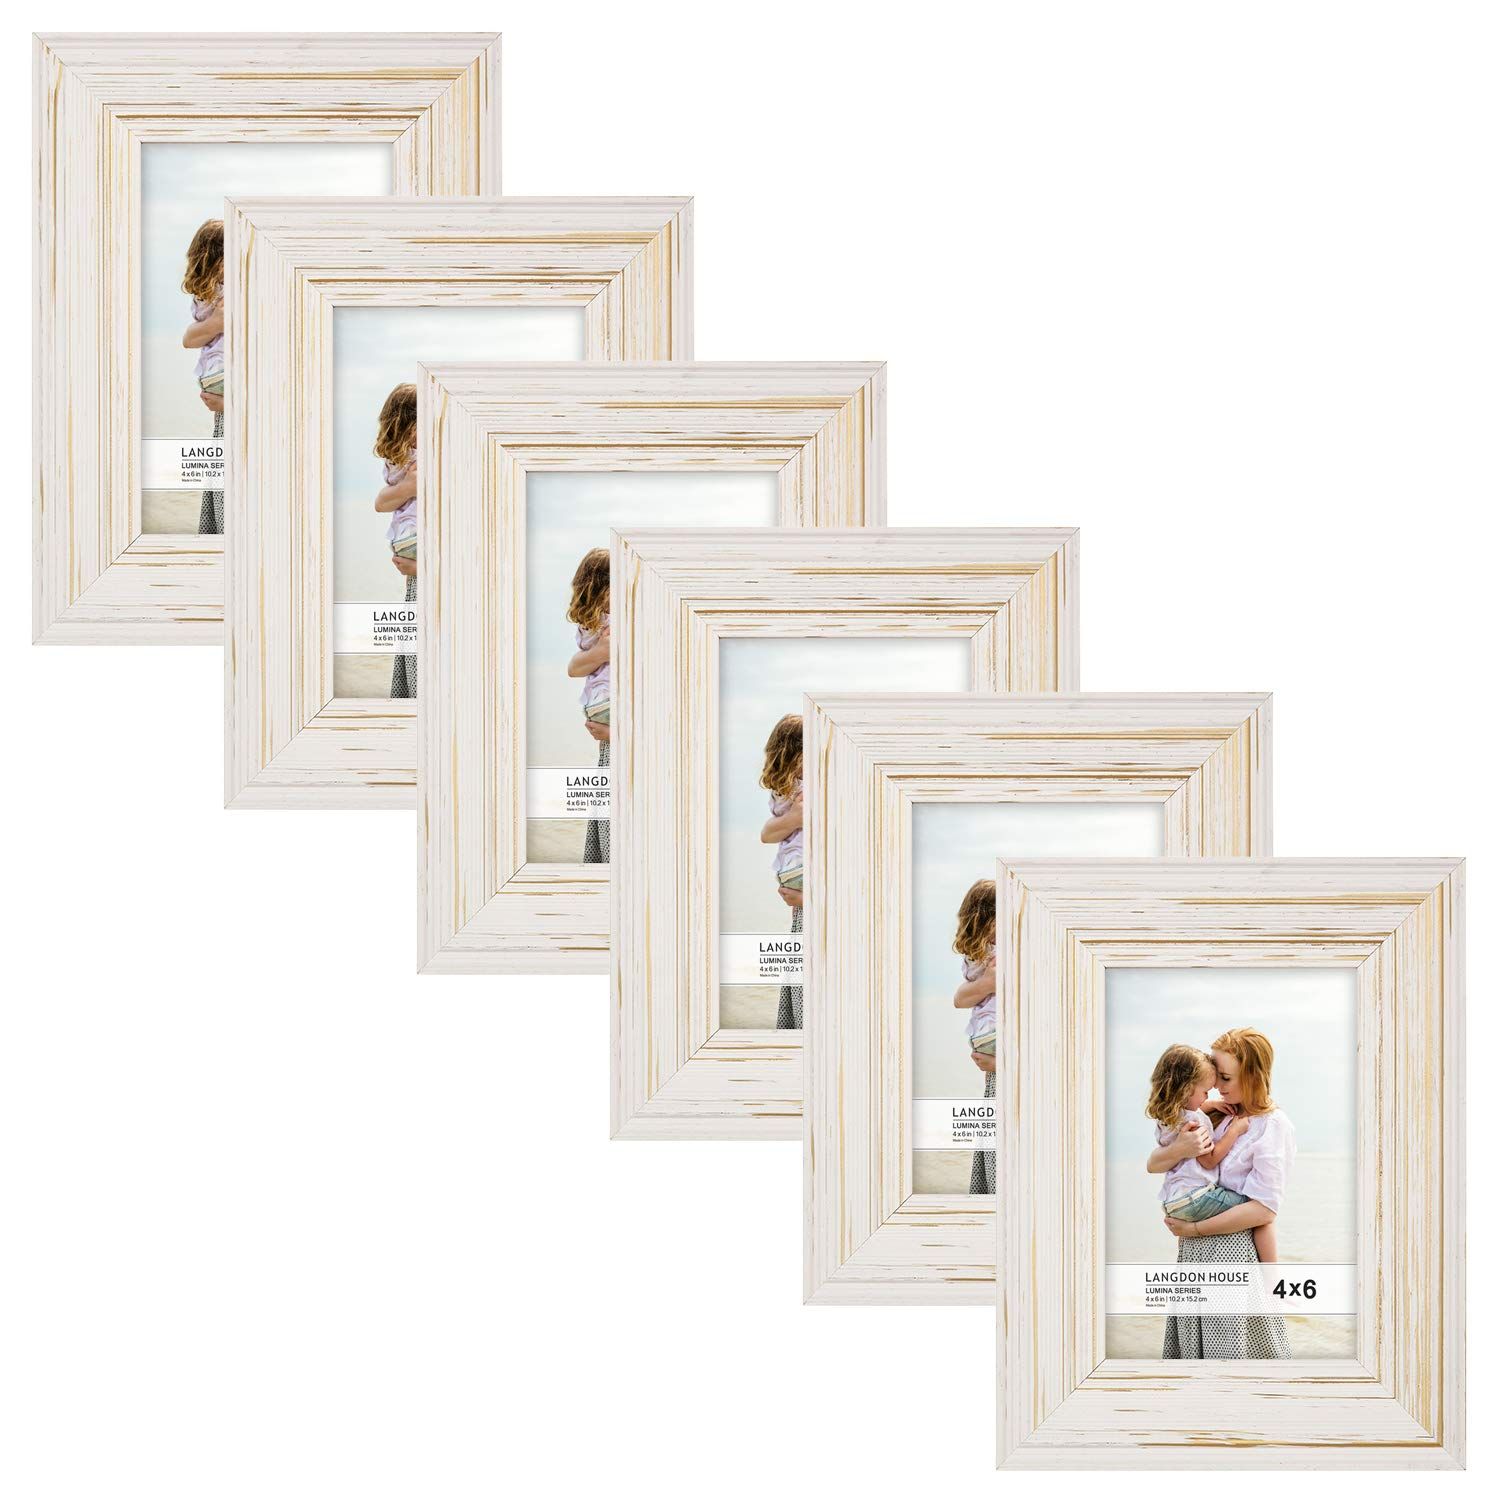 Langdon House 4x6 Real Wood Picture Frames (6 Pack, Weathered White - Gold Accents), White Wooden Photo Frame 4 x 6, Wall Mount or Table Top, Set of 6 Lumina Collection by Langdon House